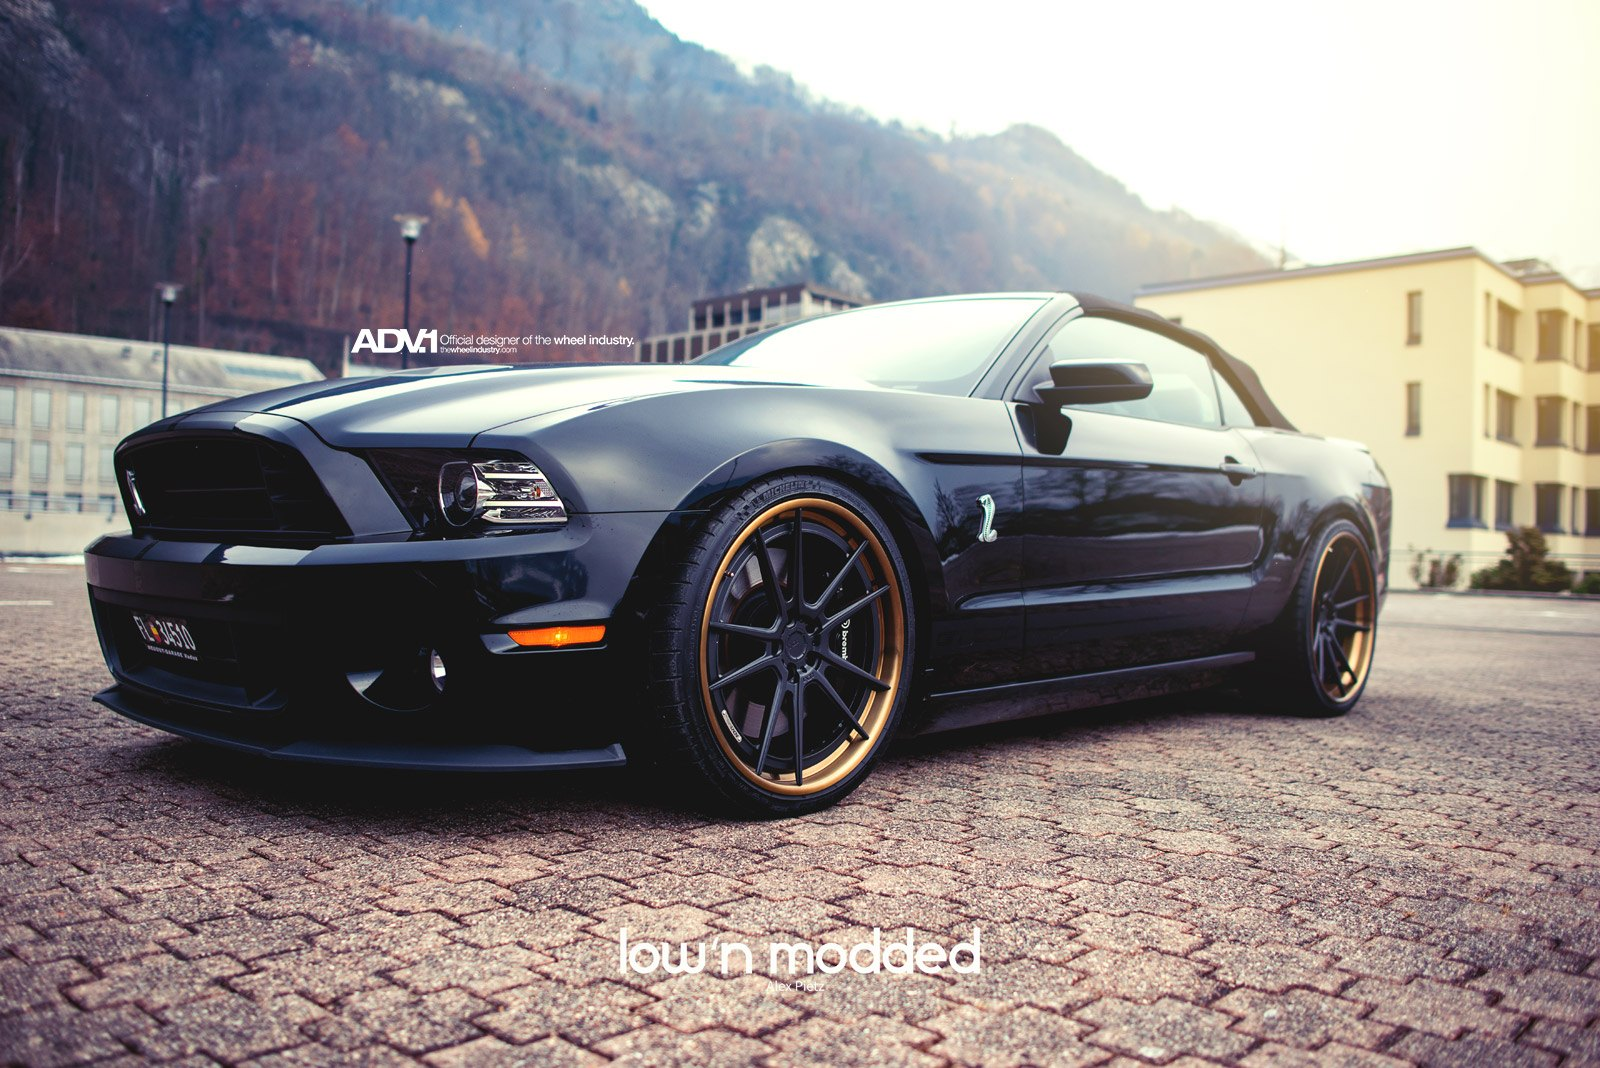 Black Ford Mustang GT500 with Aftermarket Headlights - Photo by ADV.1